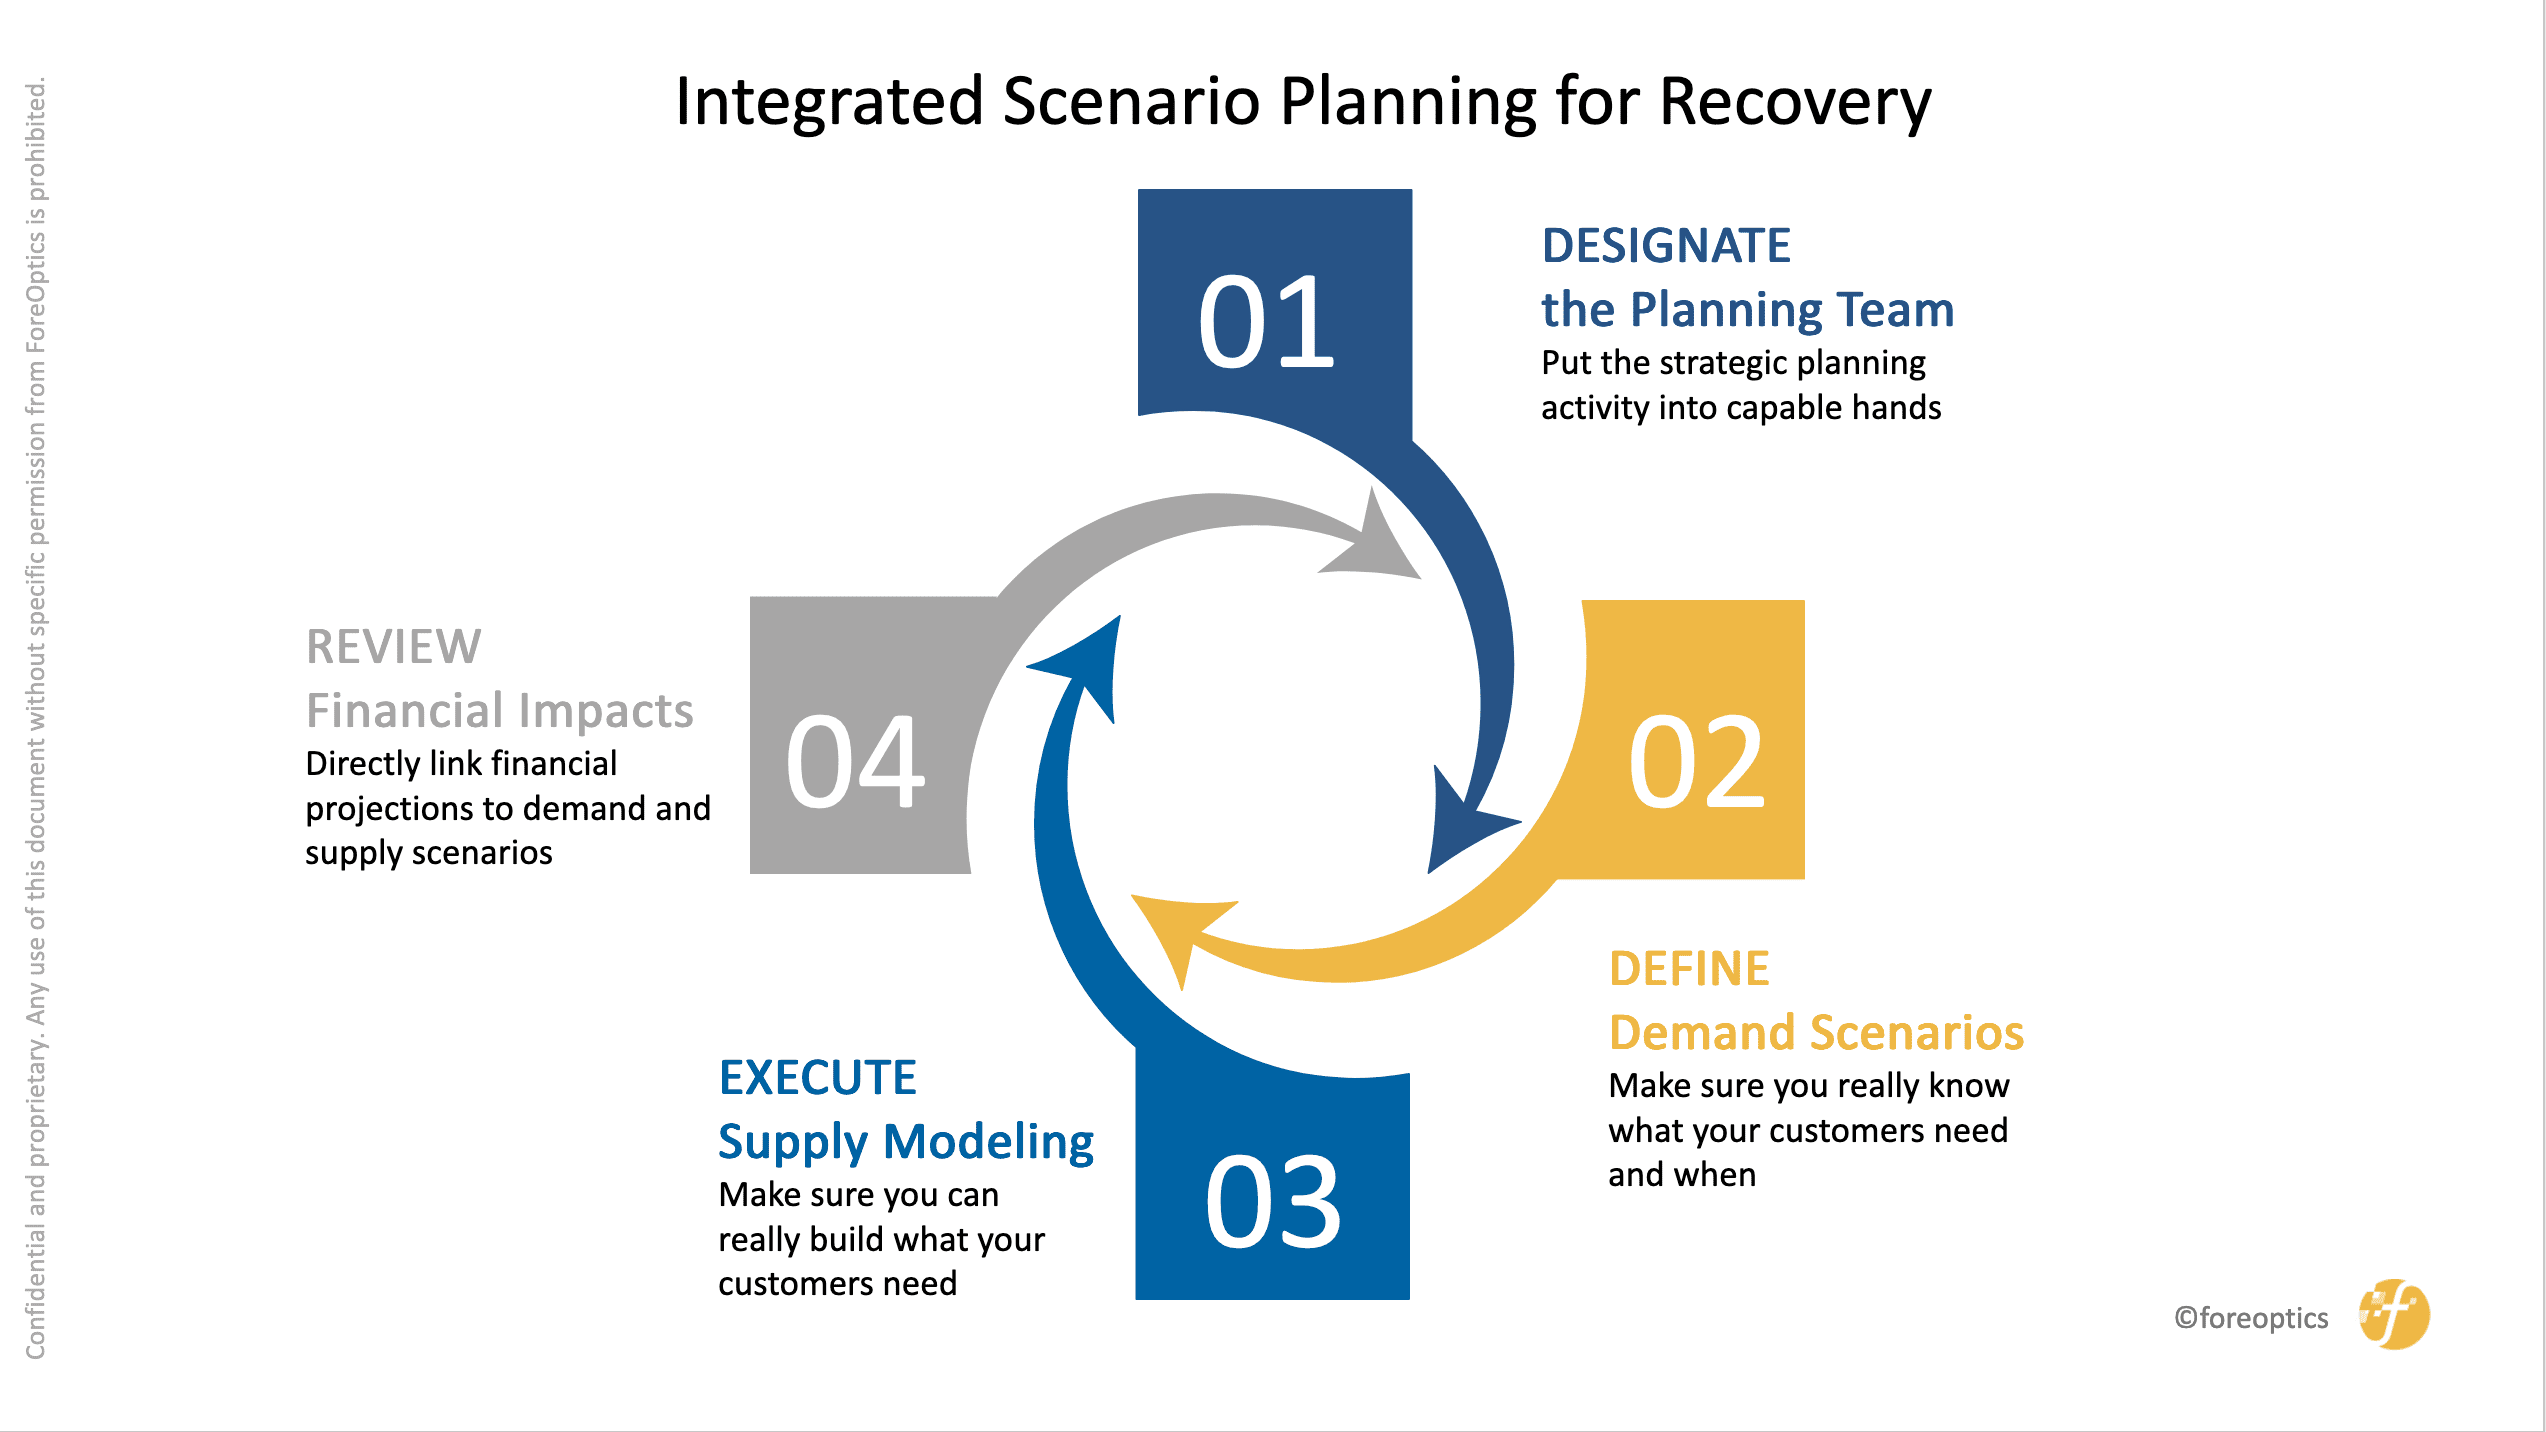 ForeOptics Integrated Scenario Planning for Recovery - Designate the planning team, define demand scenarios, execute supply modeling, review financial impacts